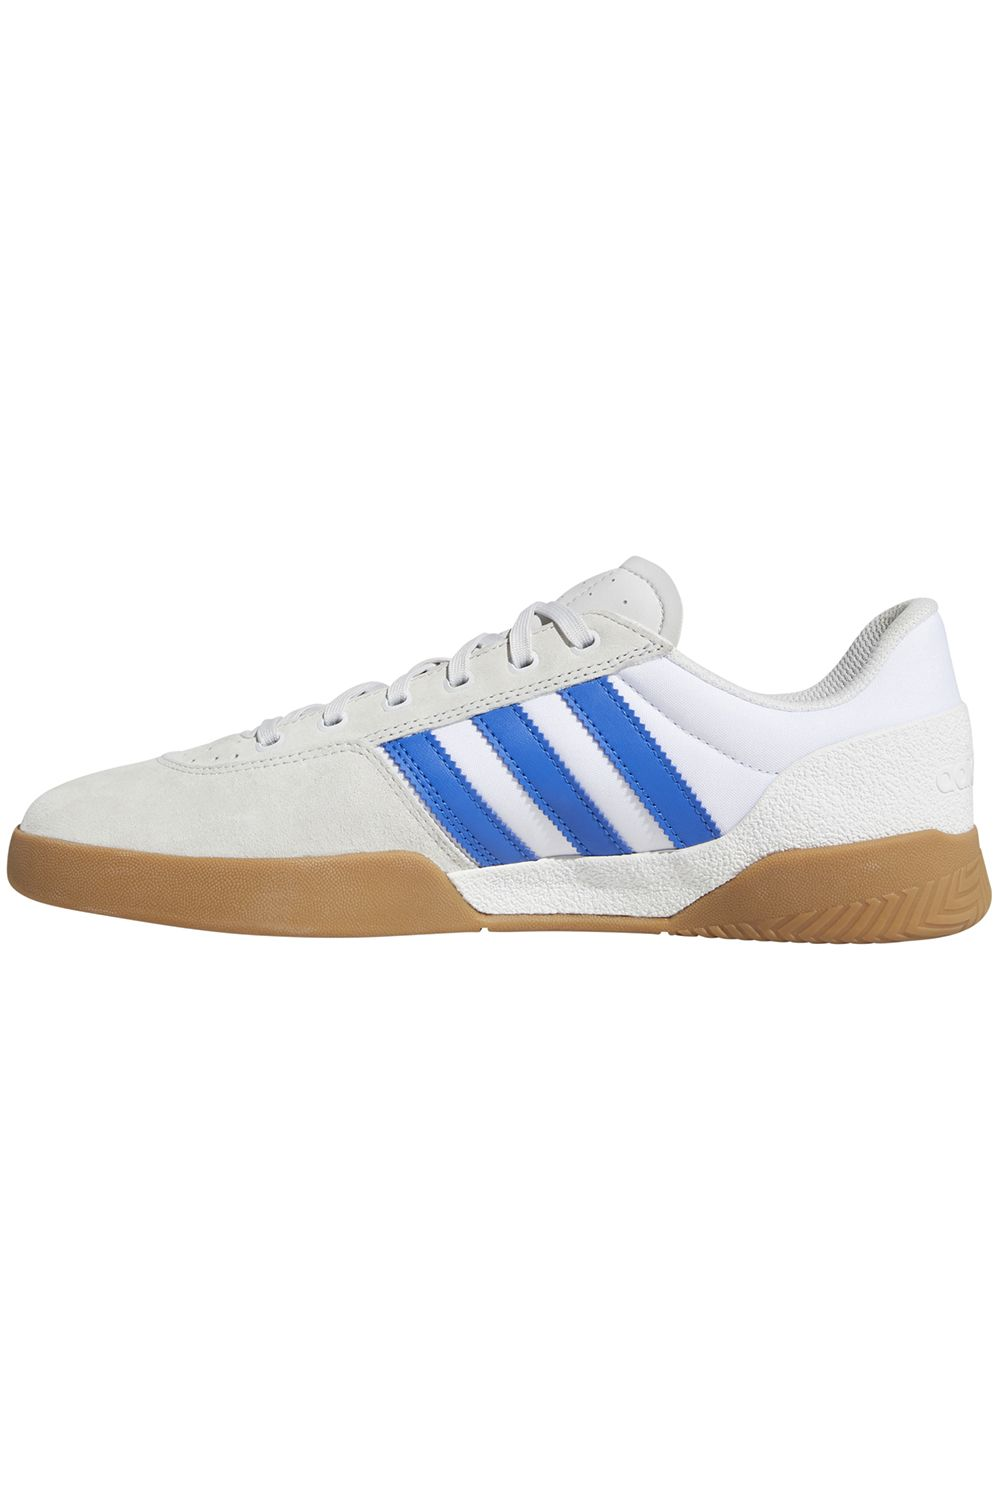 Tenis Adidas CITY CUP Crystal White/Blue/Gum4